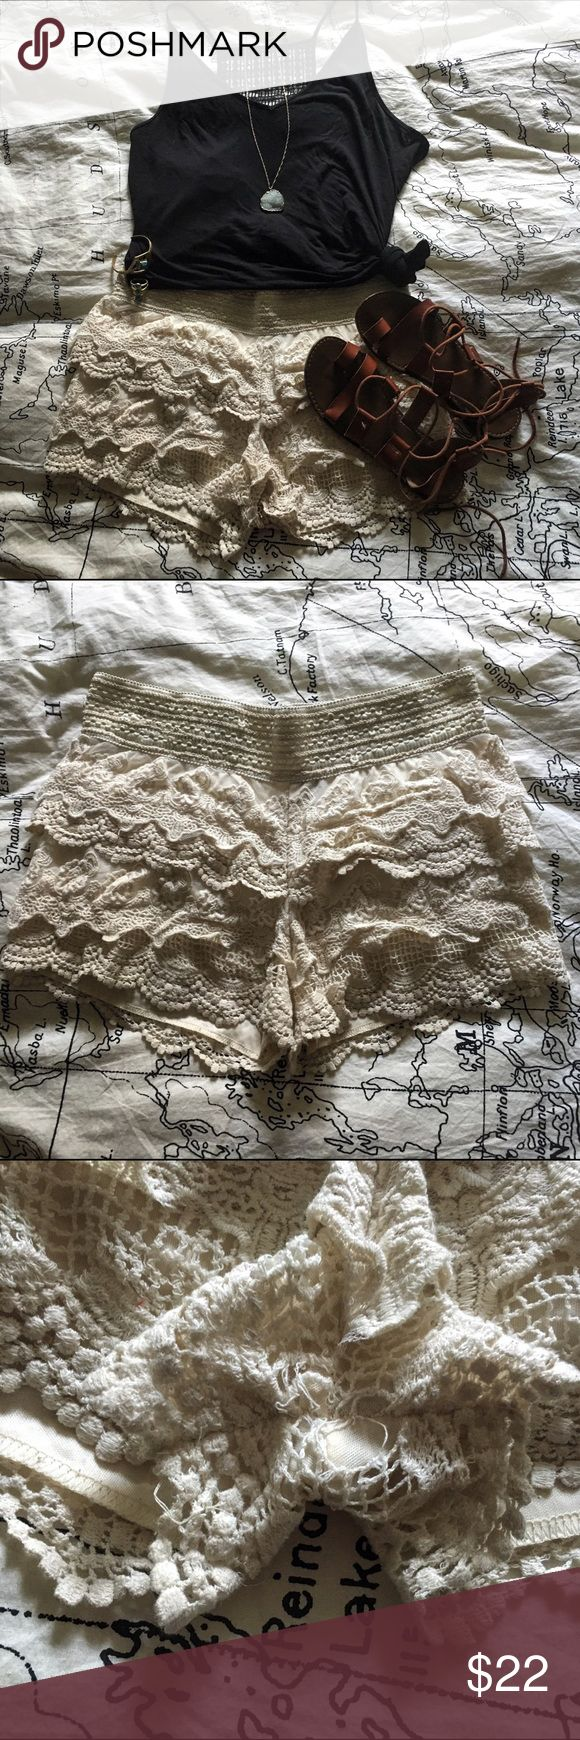 Cream Lace Shorts These lace shorts are cute, flirty, and perfect for summer. They are a gorgeous off white color, made with layers of beautiful lace that create a classy design. They have a layer of cream fabric to prevent them from being see through, however still wear light colored under garments so that nothing can be seen. There is a small hole of lace coming undone in the crotch area. Due to location and size it isn't very noticeable. Besides this only worn a few times and in great…